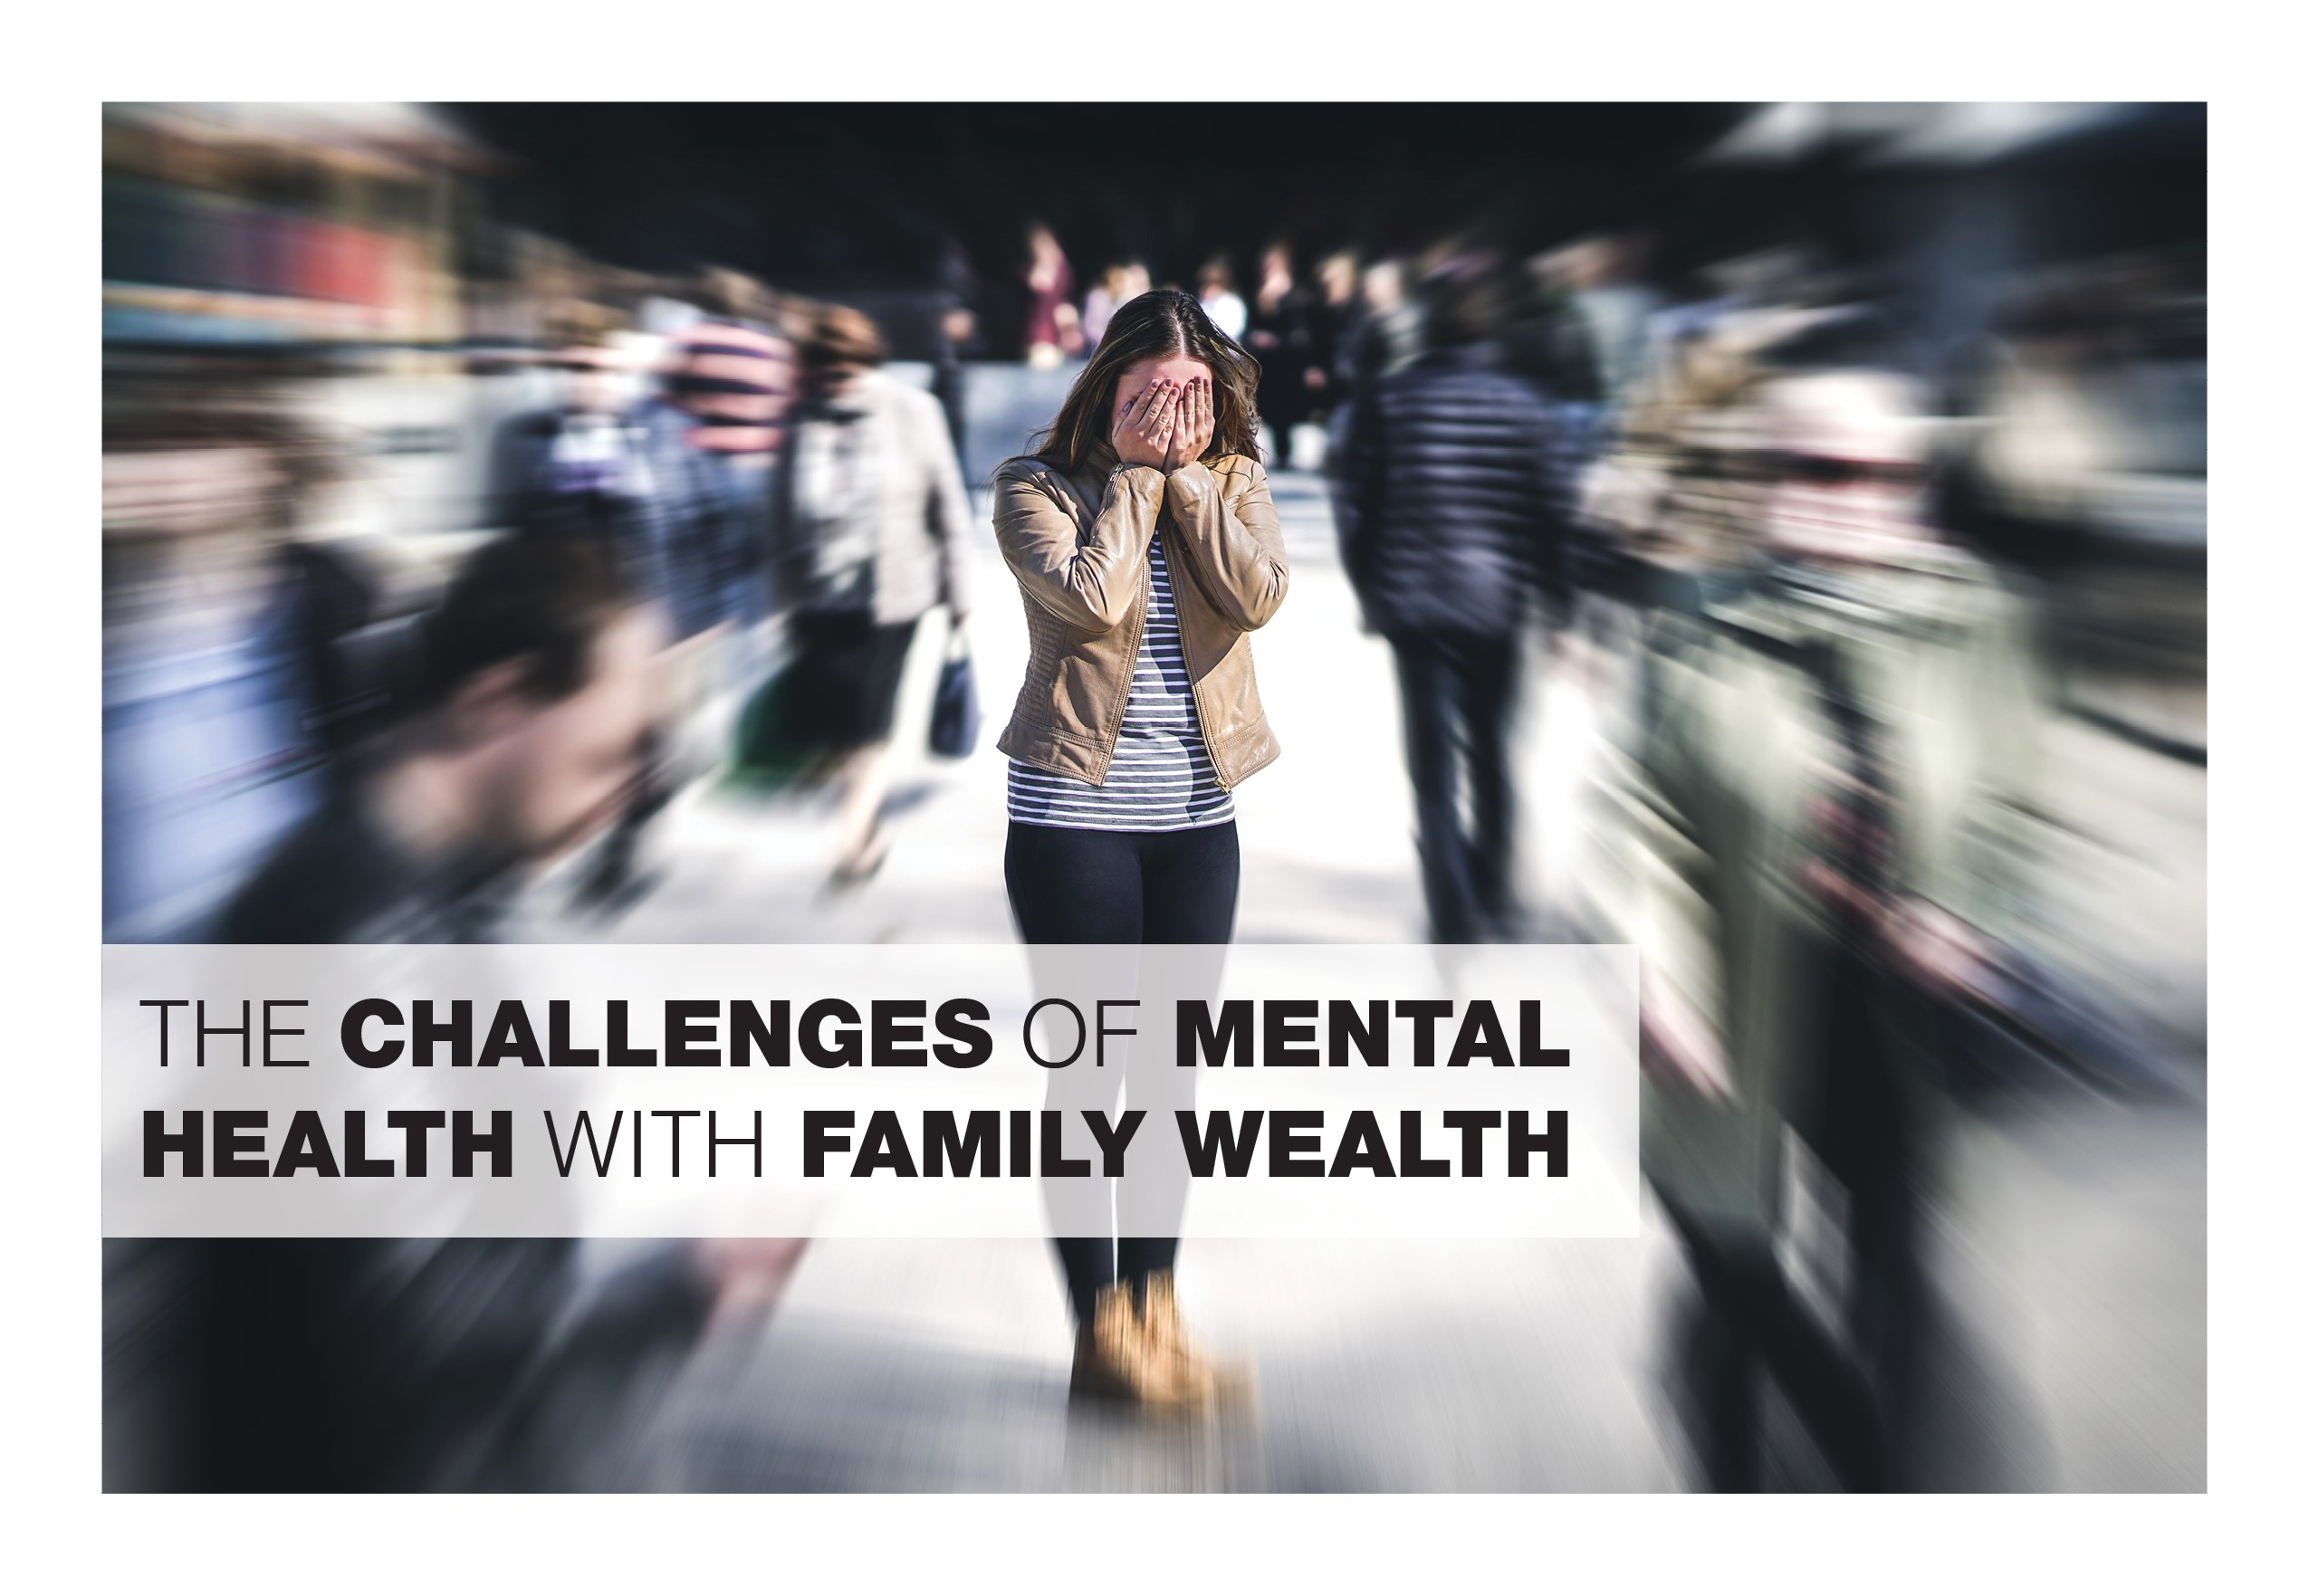 Challenges of Mental Health